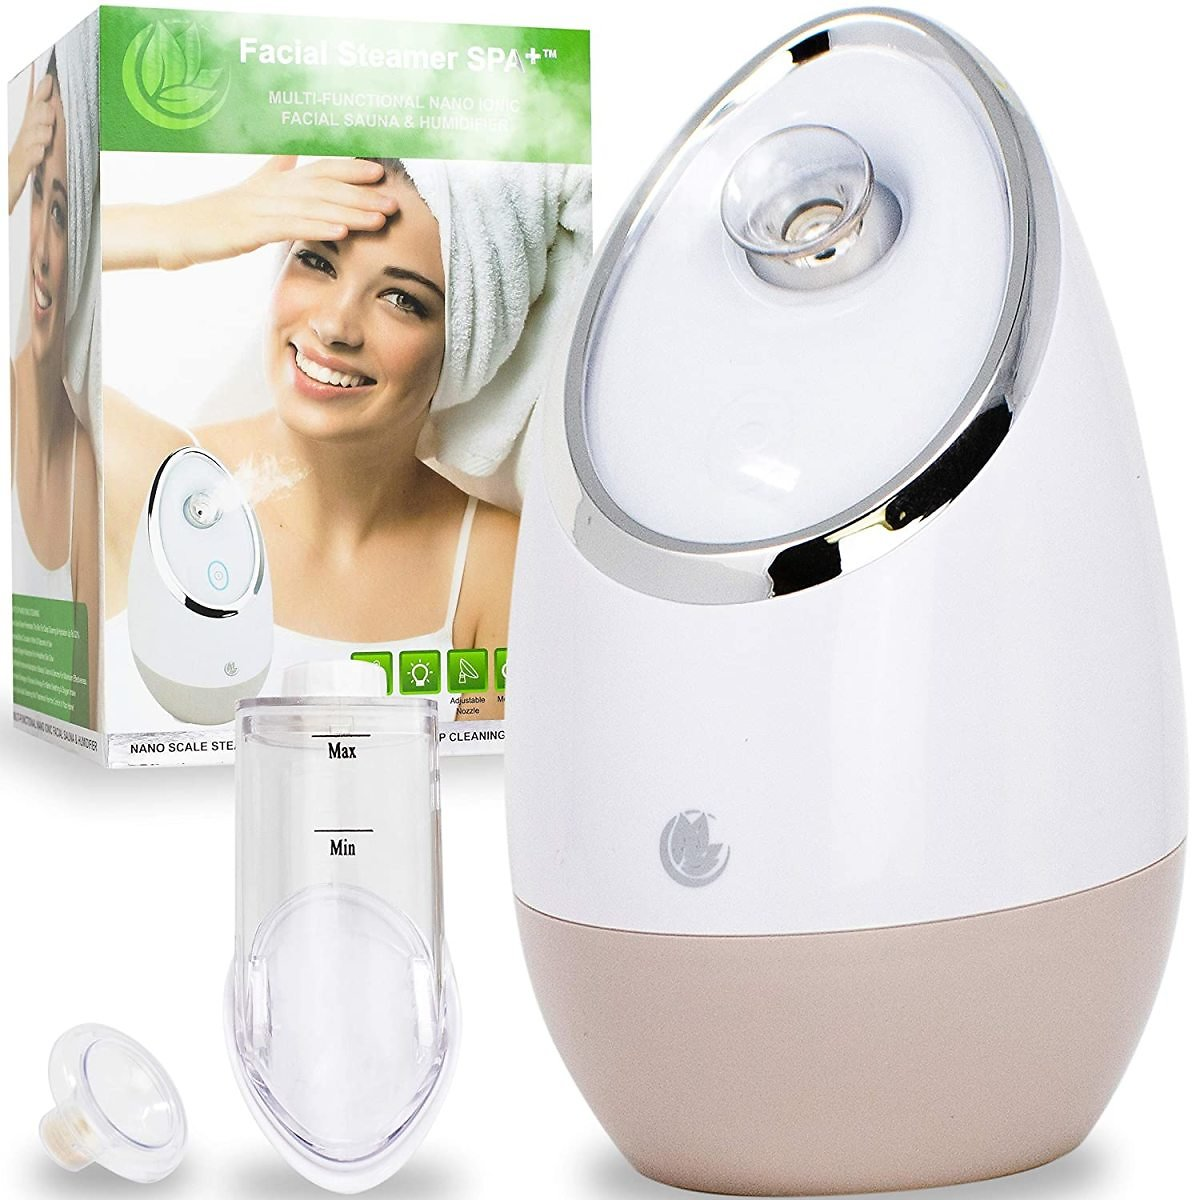 67% OFF - Facial Steamer SPA+ By Microderm GLO - Best Professional Nano Ionic Warm Mist, Home Face Sauna